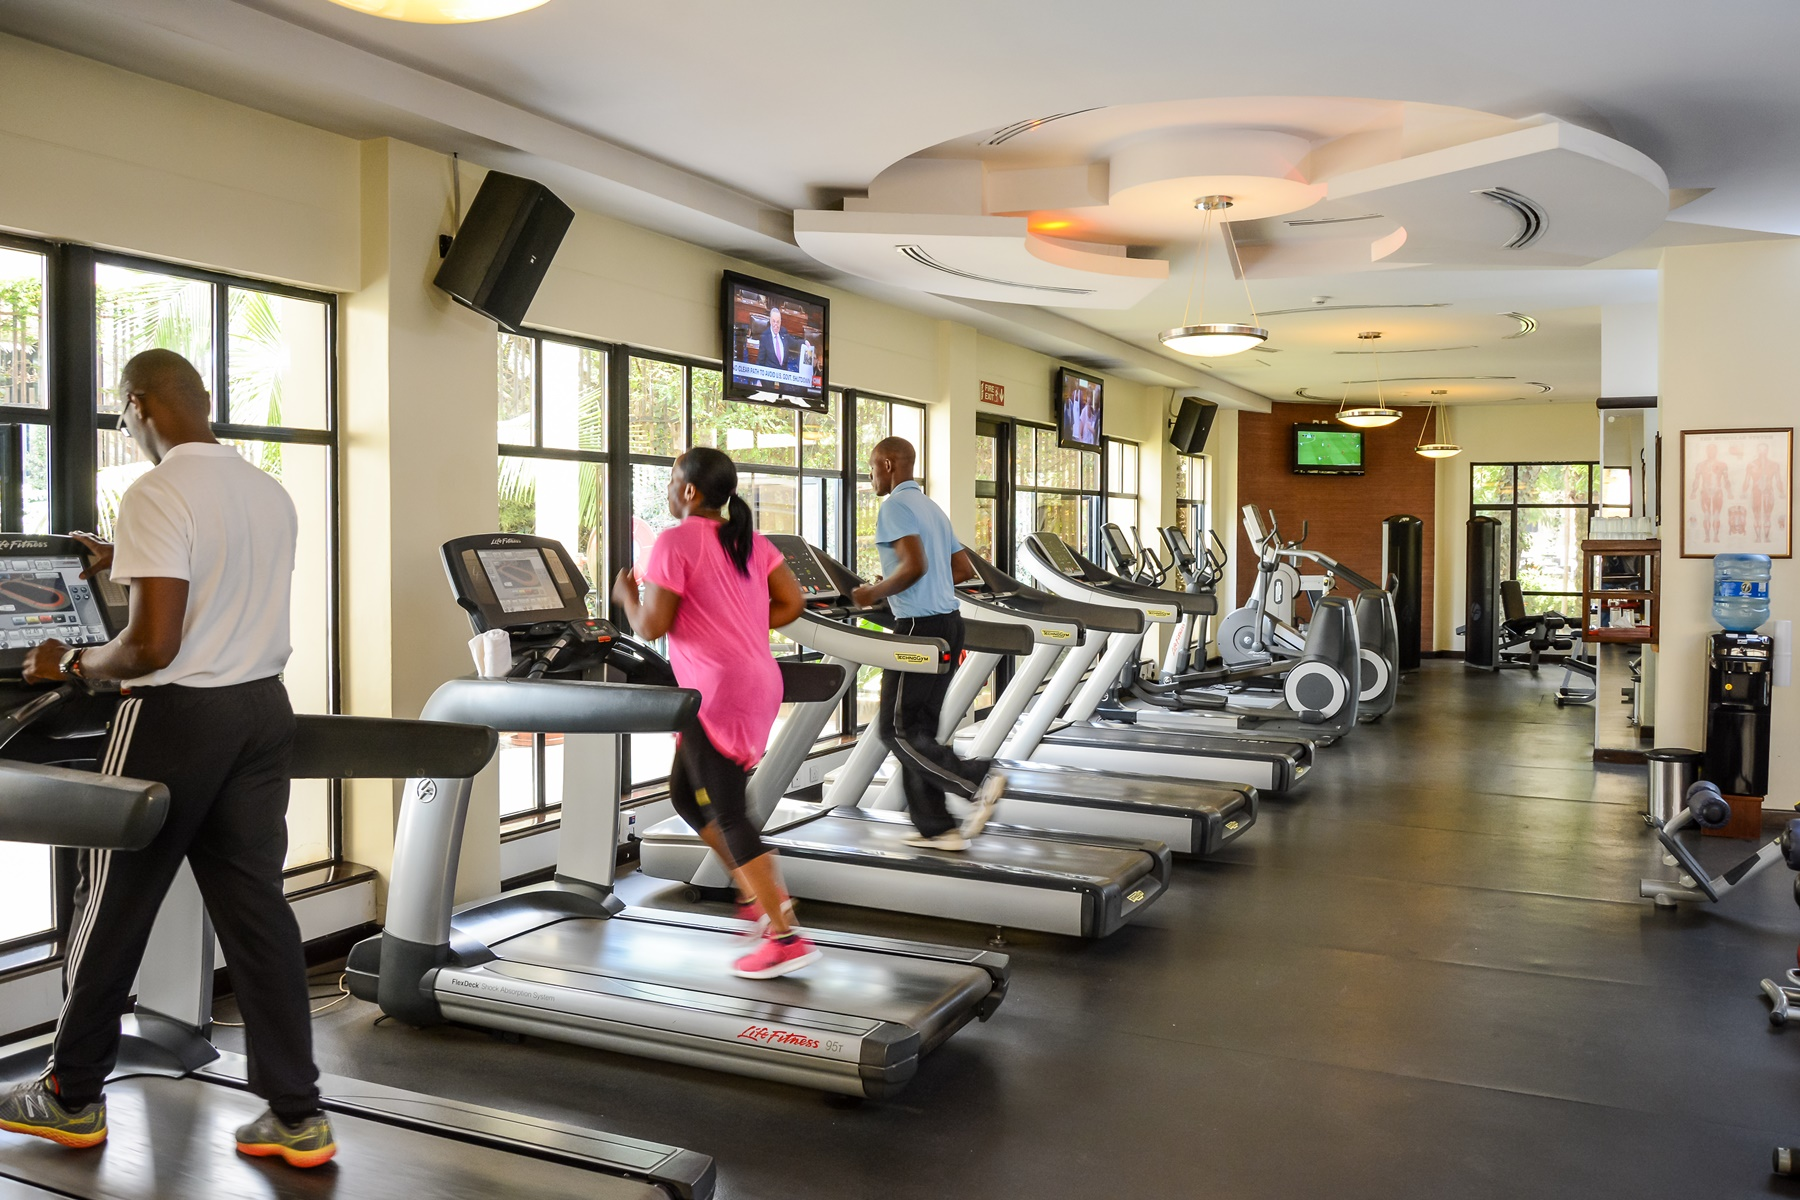 Image result for Gyms in Kenya - Spas and Gyms in Nairobi Kenya